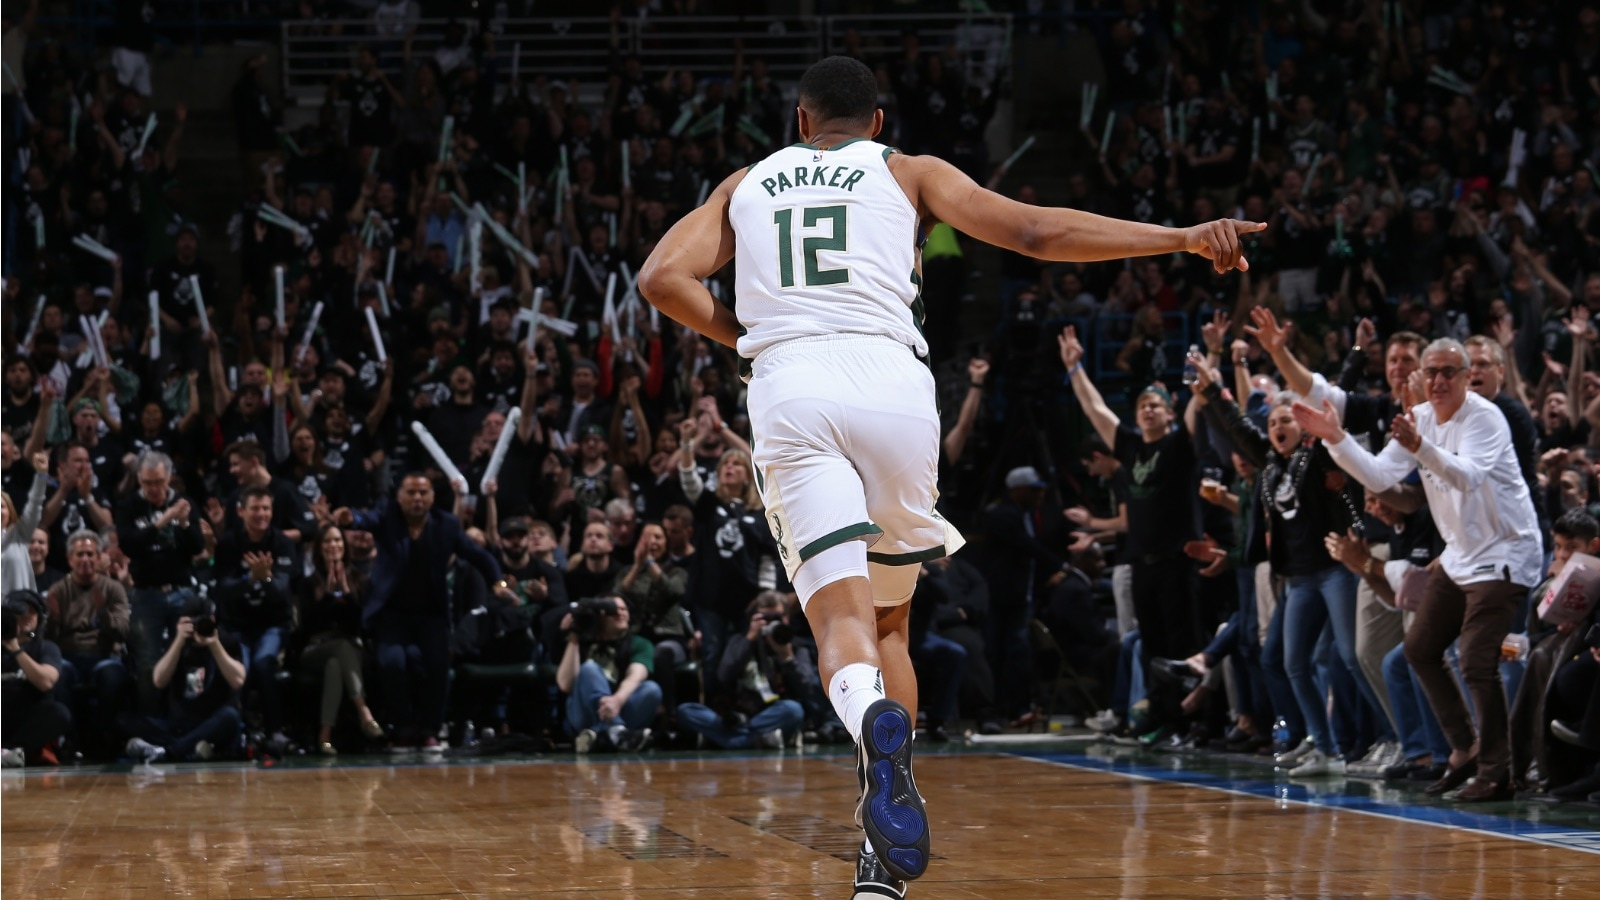 Jabari Parker celebrates after hitting a clutch shot